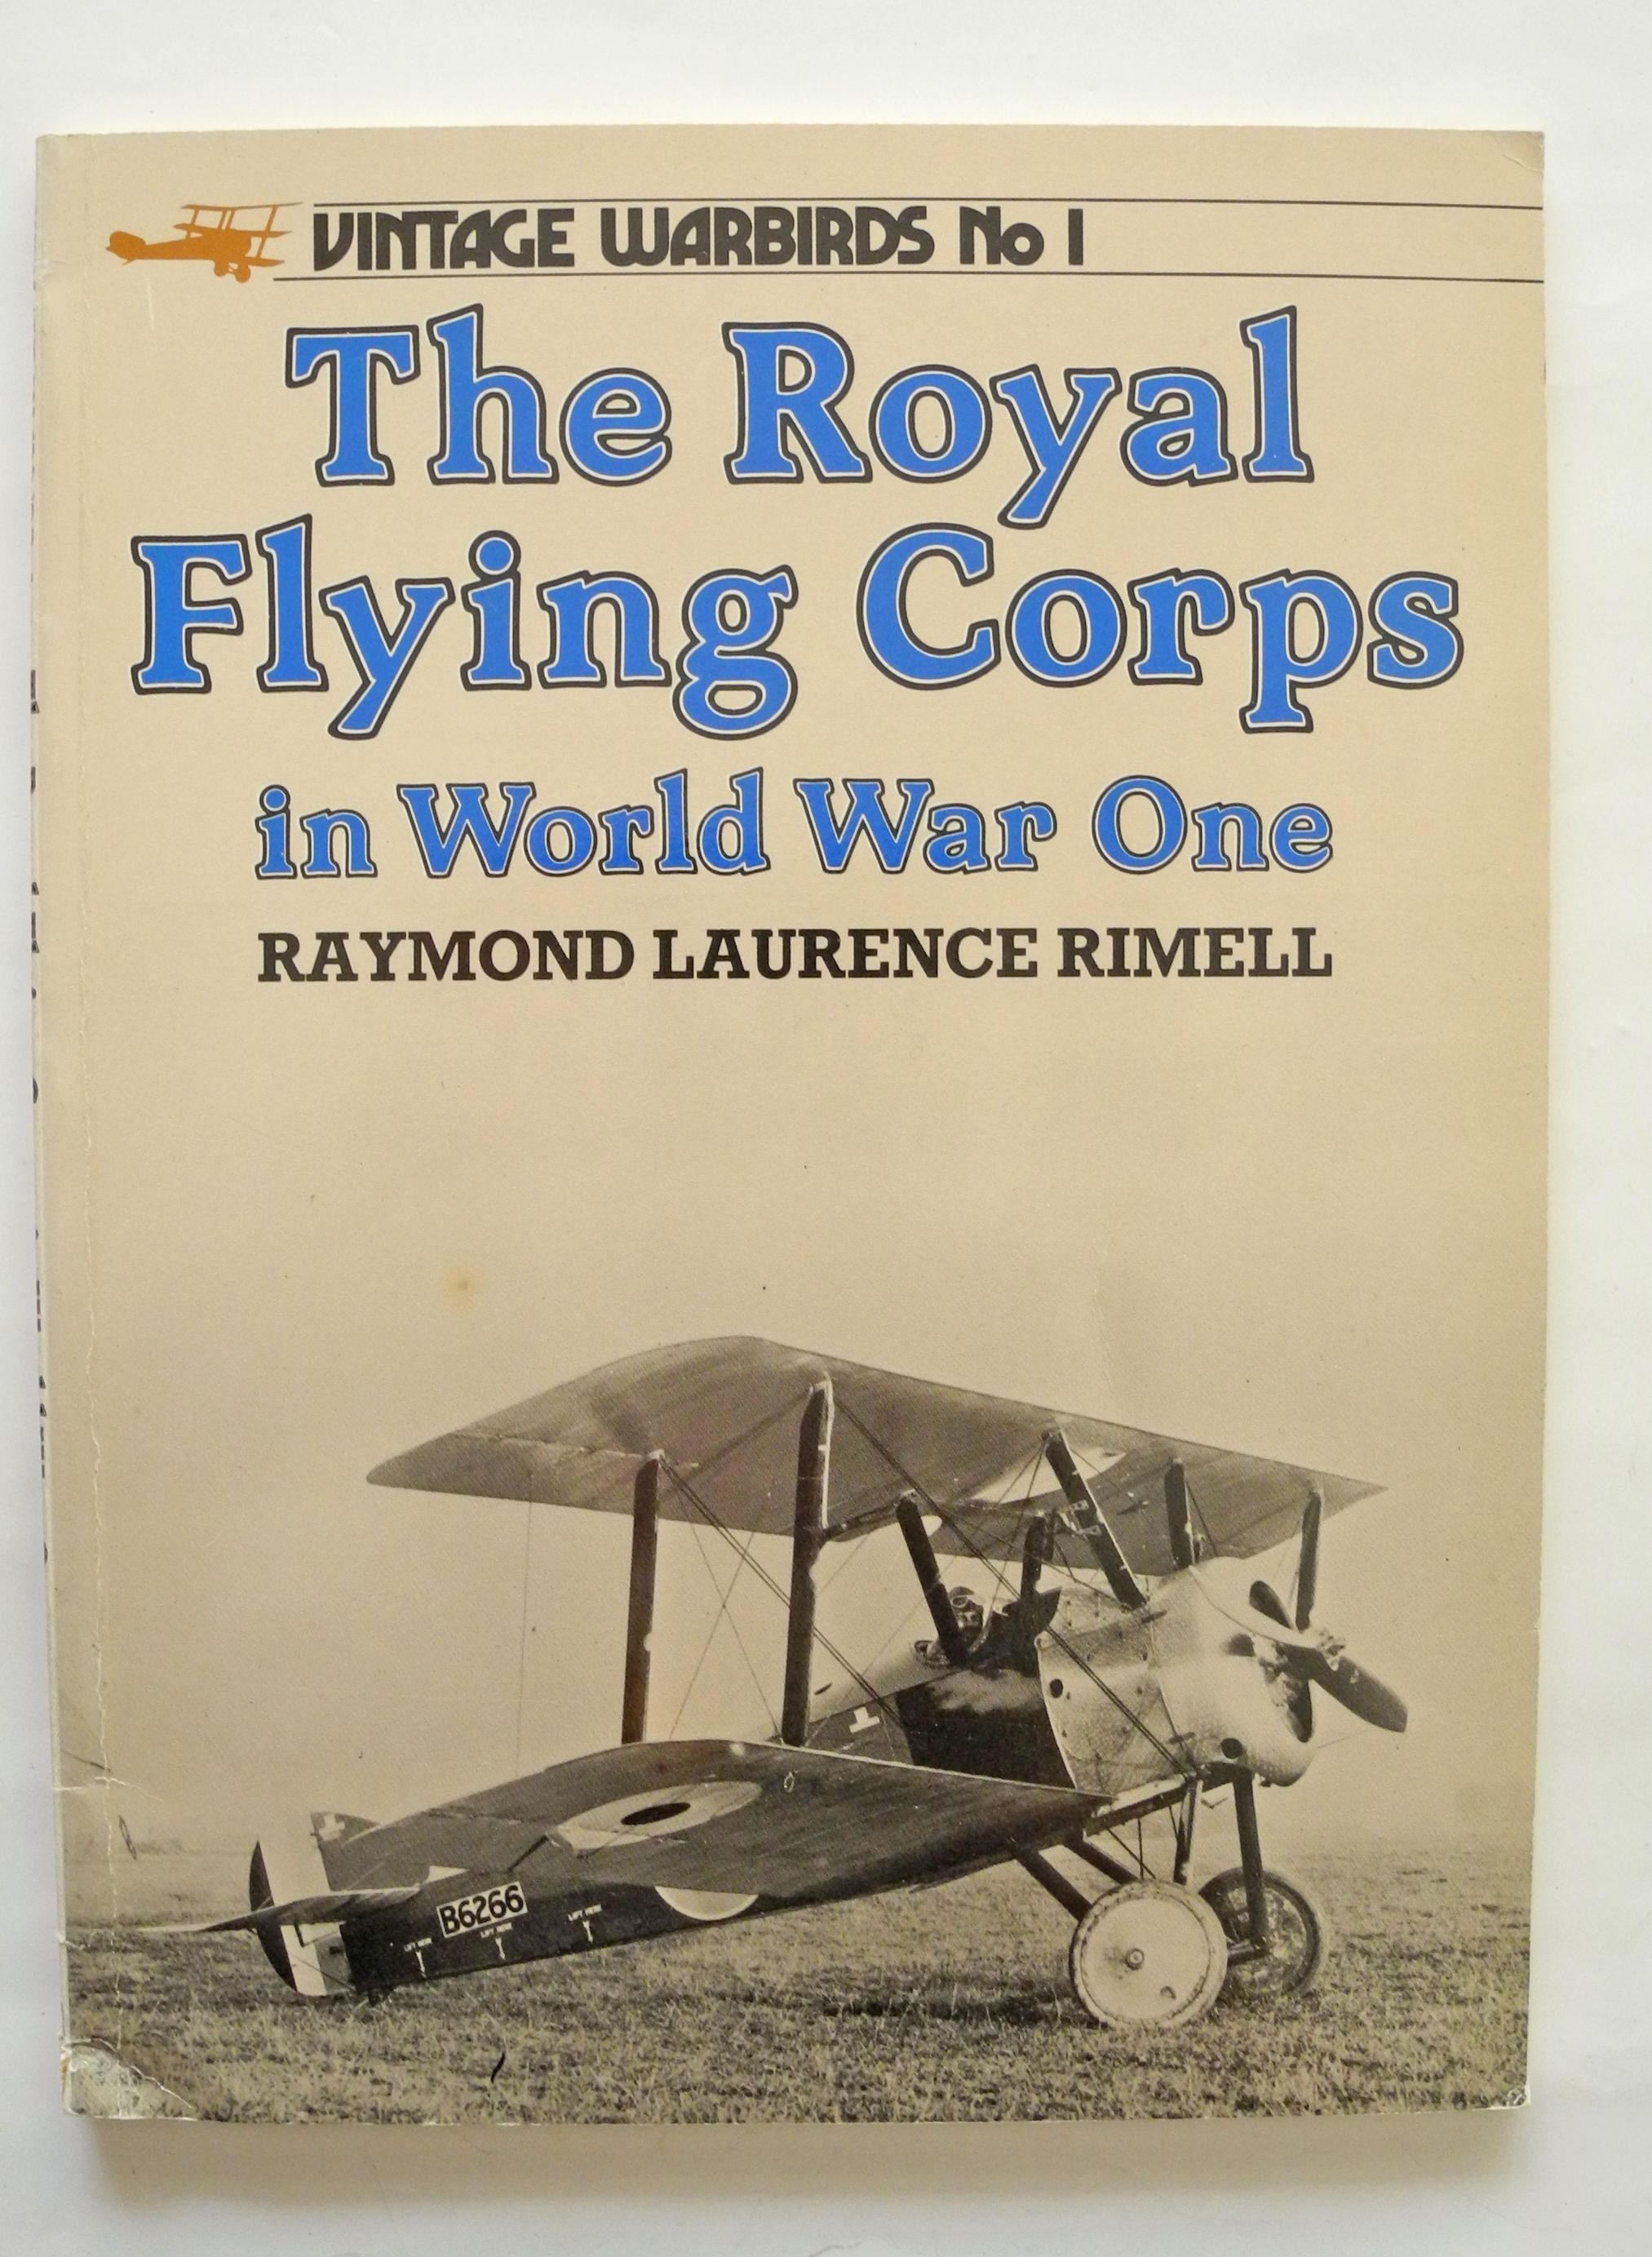 Osprey books on WWI aviation x 6